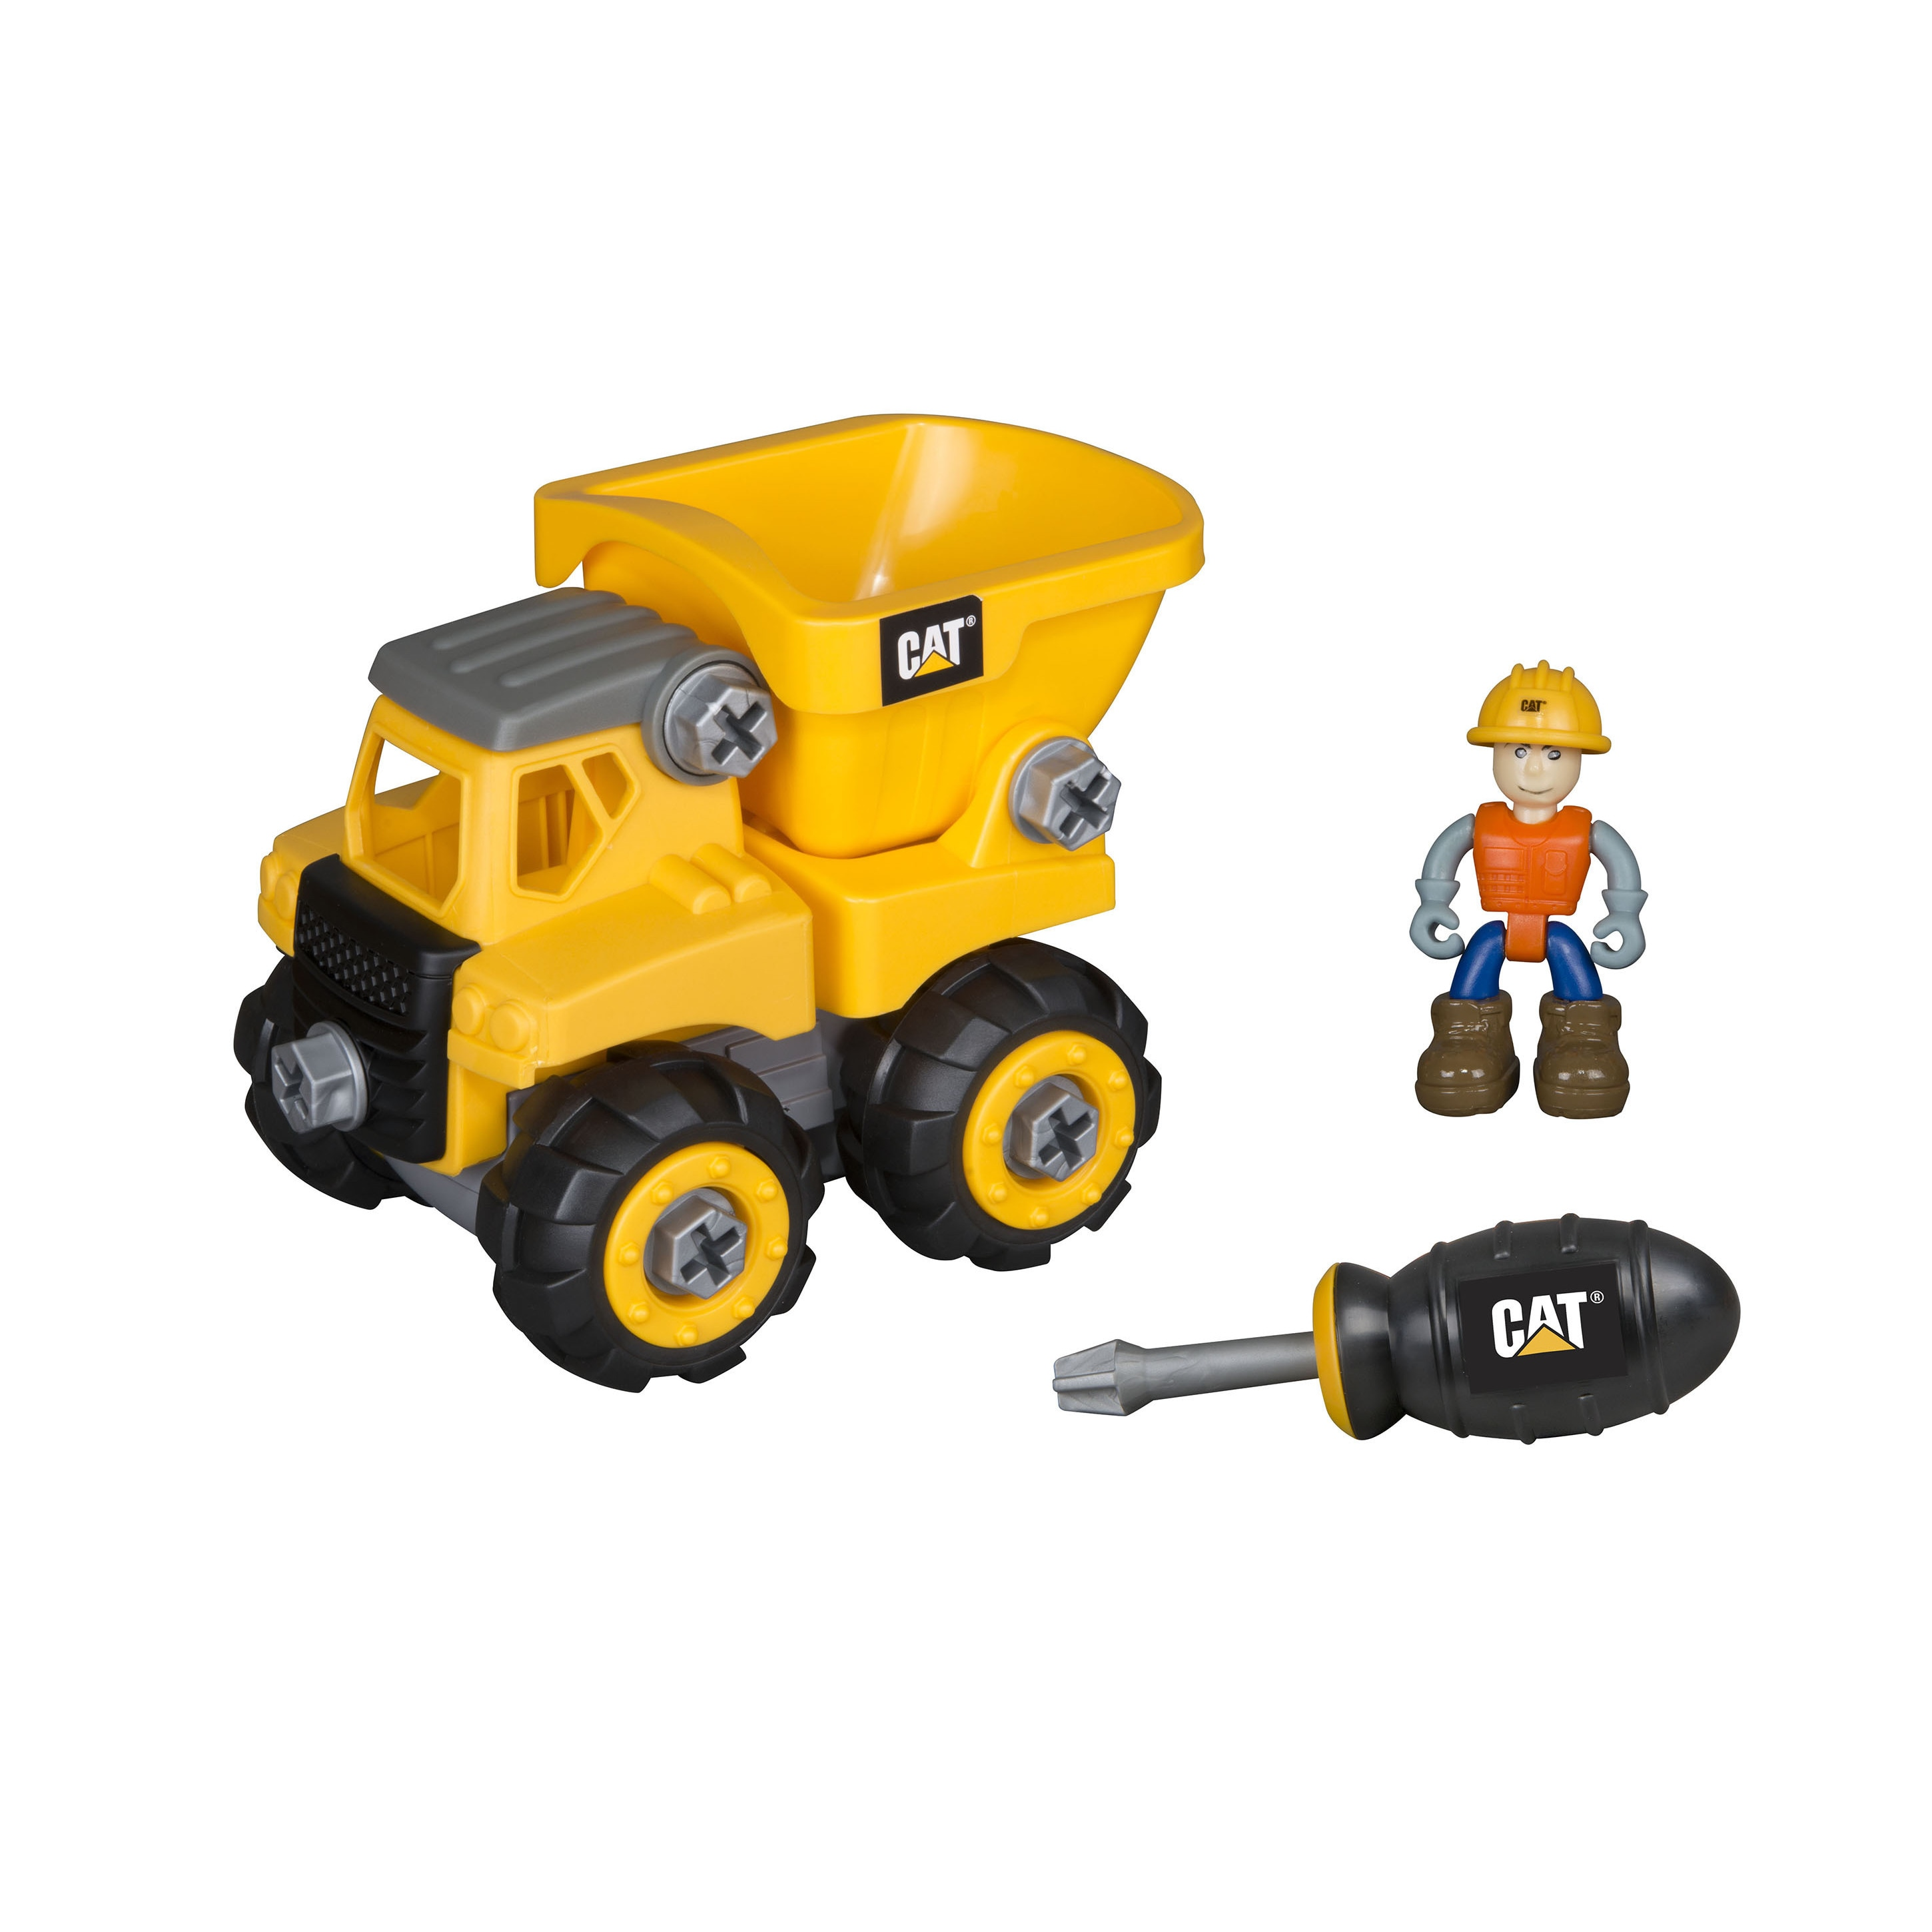 Caterpillar Junior Operator Dump Truck Construction Vehicle